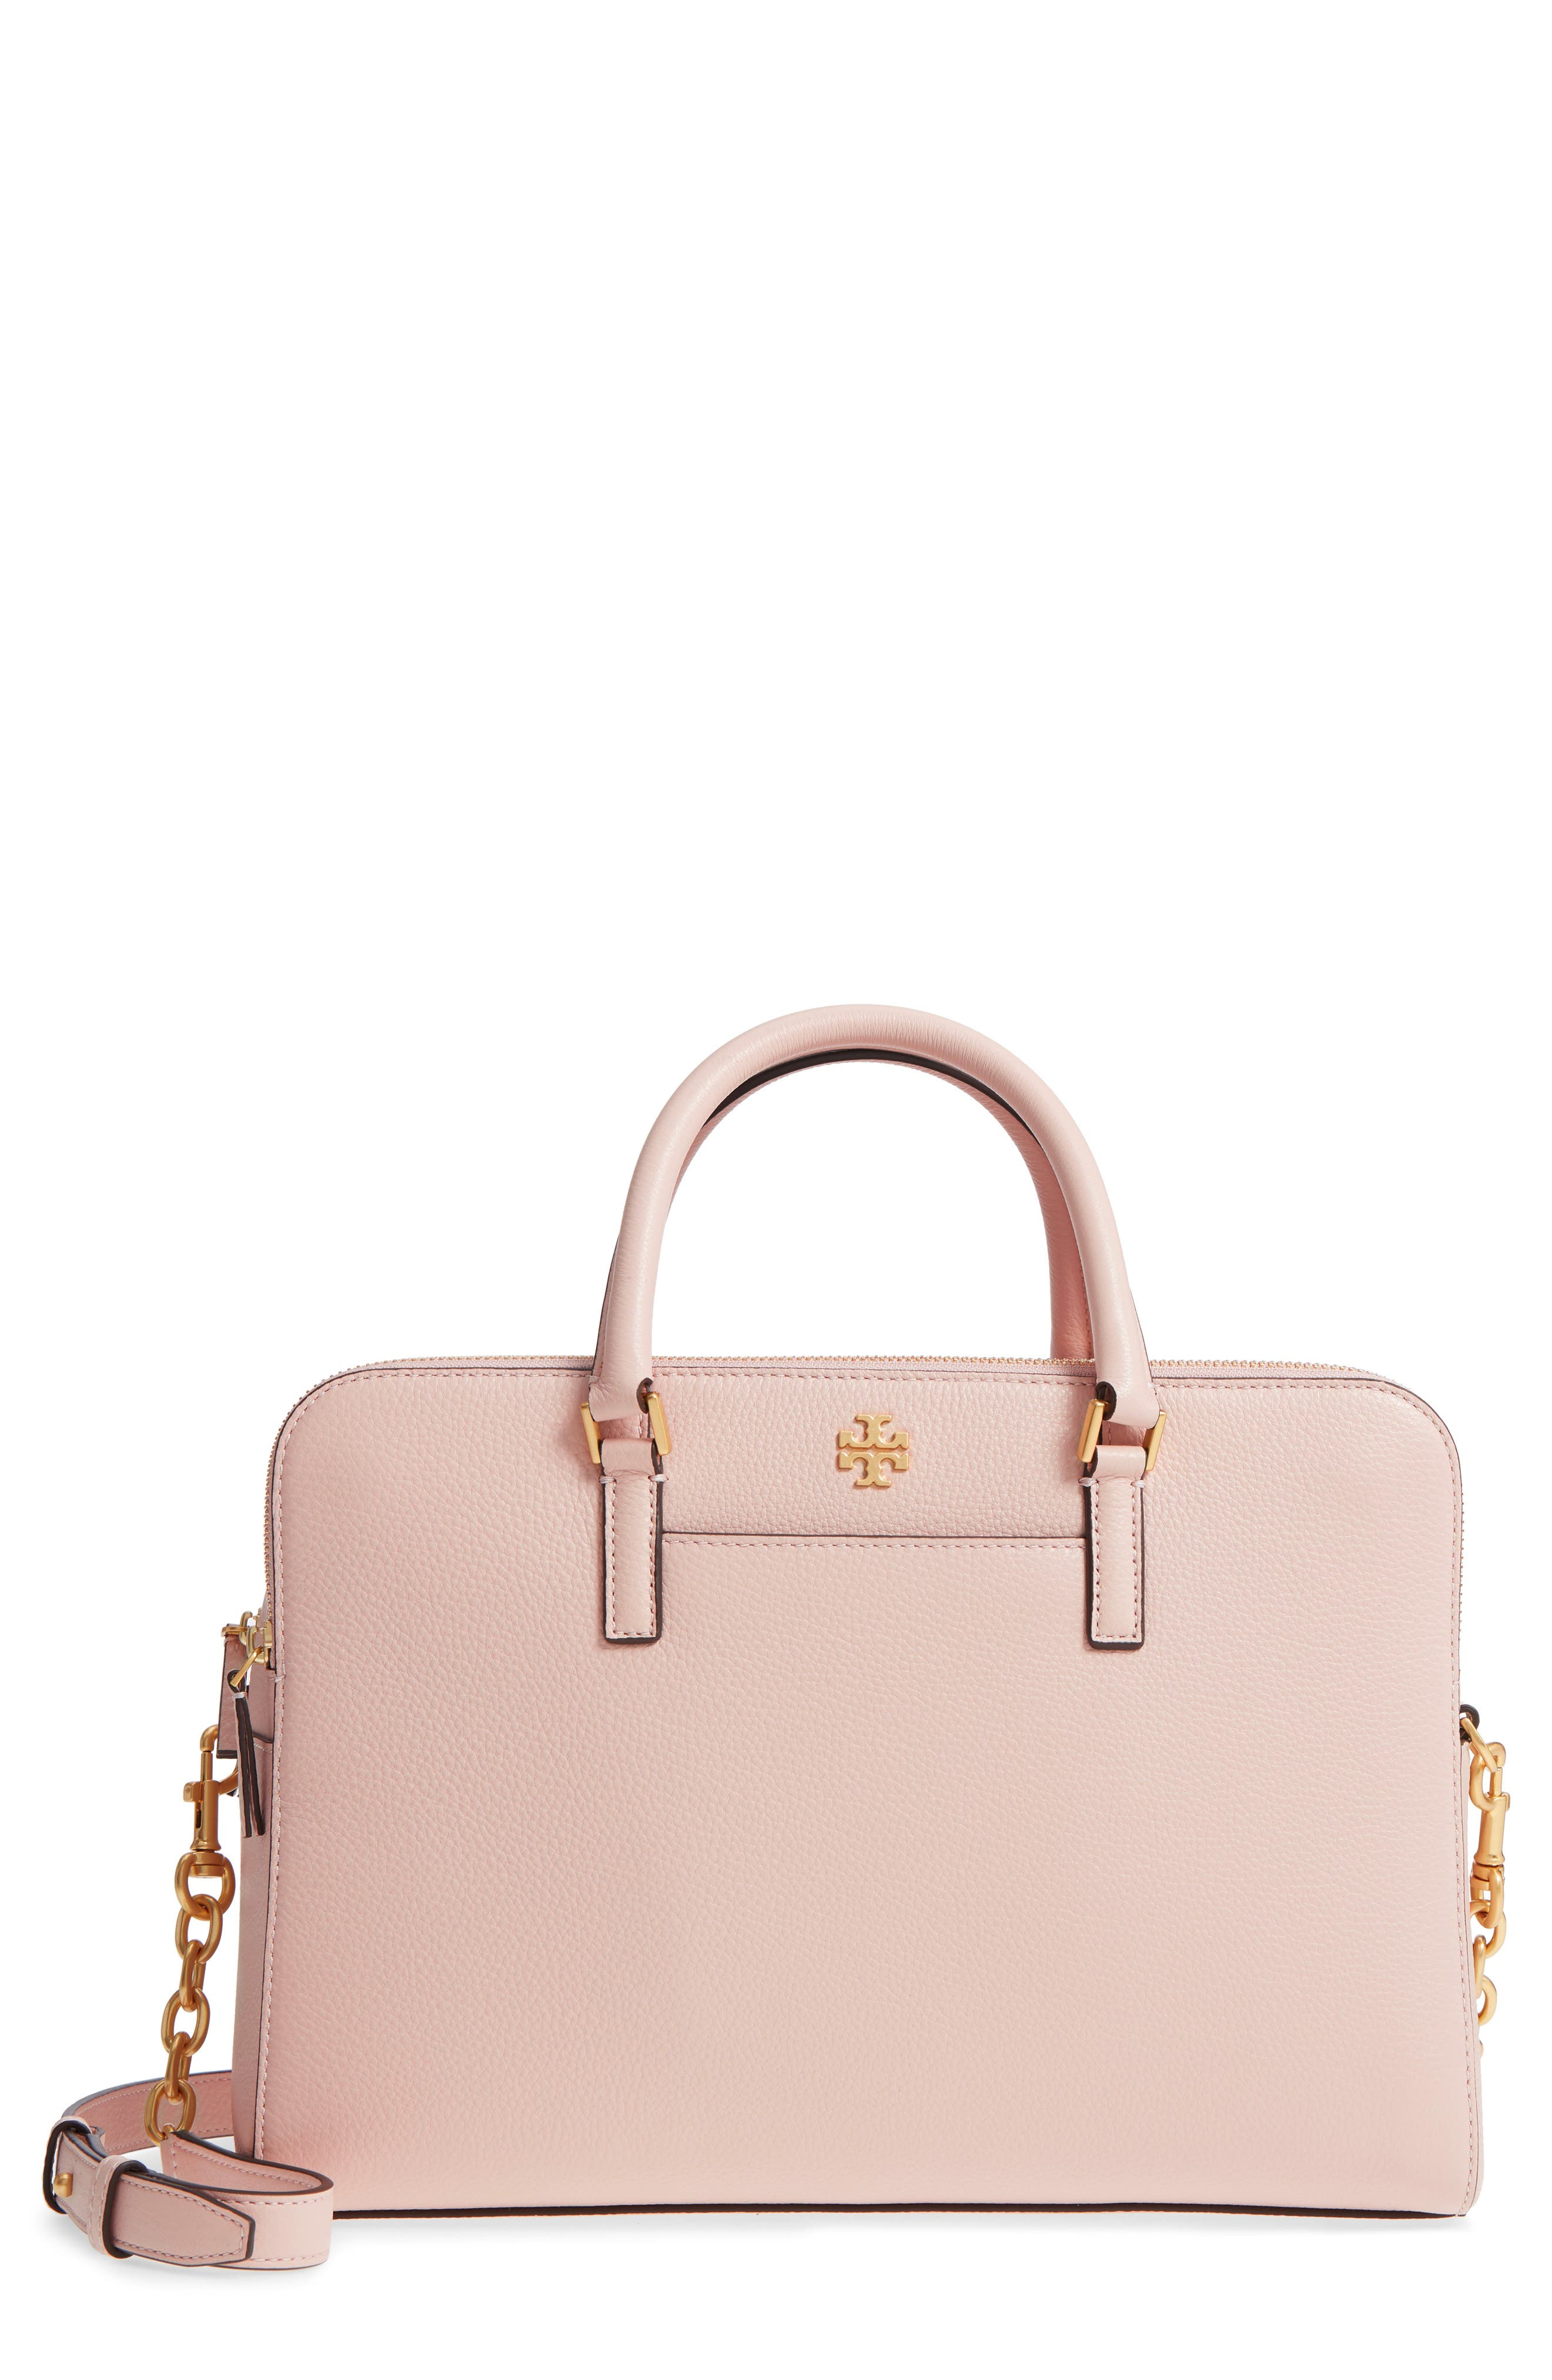 Tory Burch Georgia Double Zip Pebbled Leather Satchel